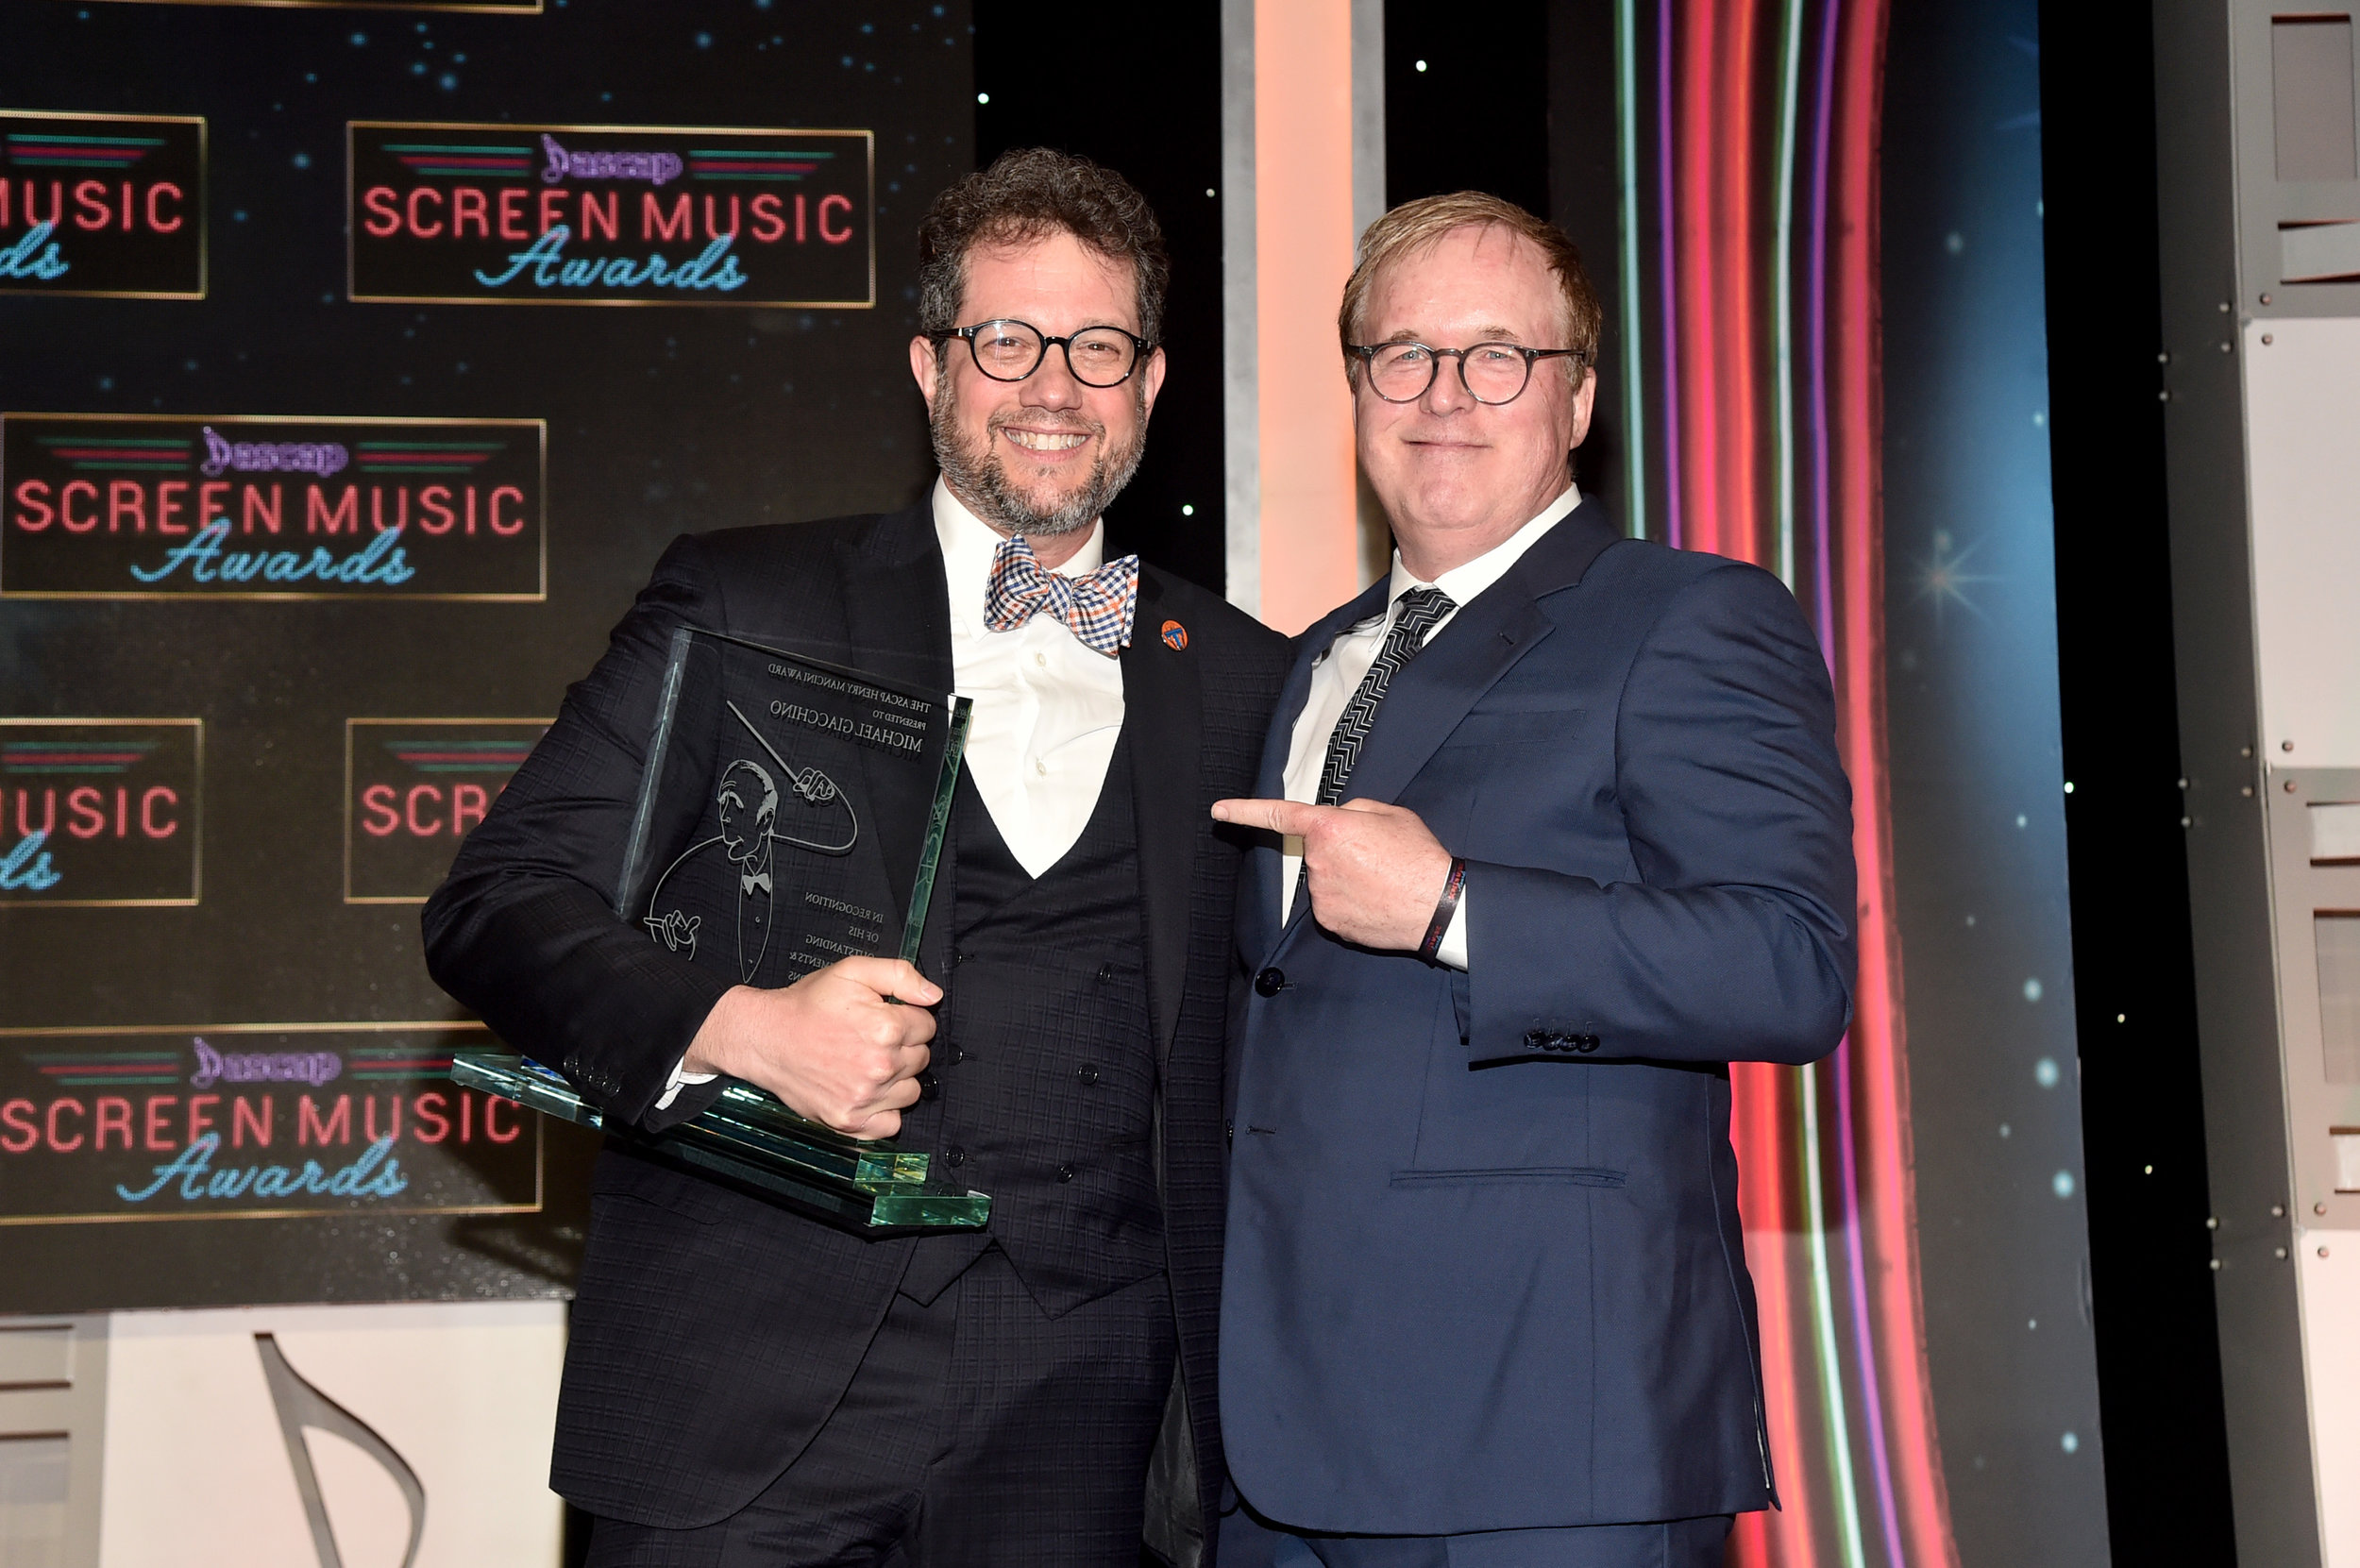 BEVERLY HILLS, CALIFORNIA - MAY 15: (L-R) ASCAP Henry Mancini award winner Michael Giacchino and director Brad Bird stand onstage during the ASCAP 2019 Screen Music Awards Show at The Beverly Hilton Hotel on May 15, 2019 in Beverly Hills, California. (Photo by Alberto E. Rodriguez/Getty Images for ASCAP)